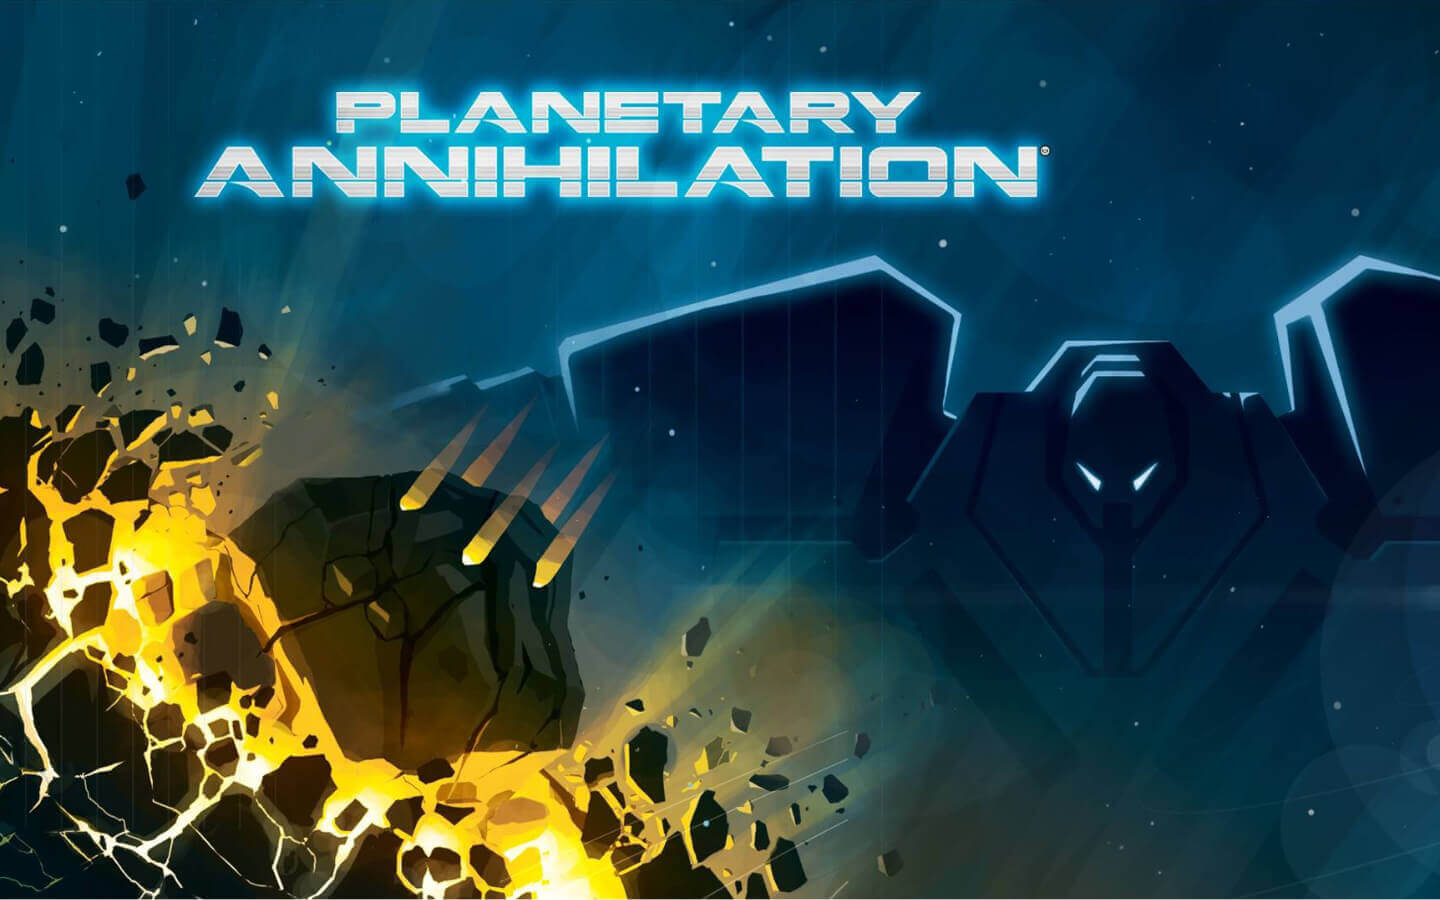 Planetary Annihilation Cover Graphic